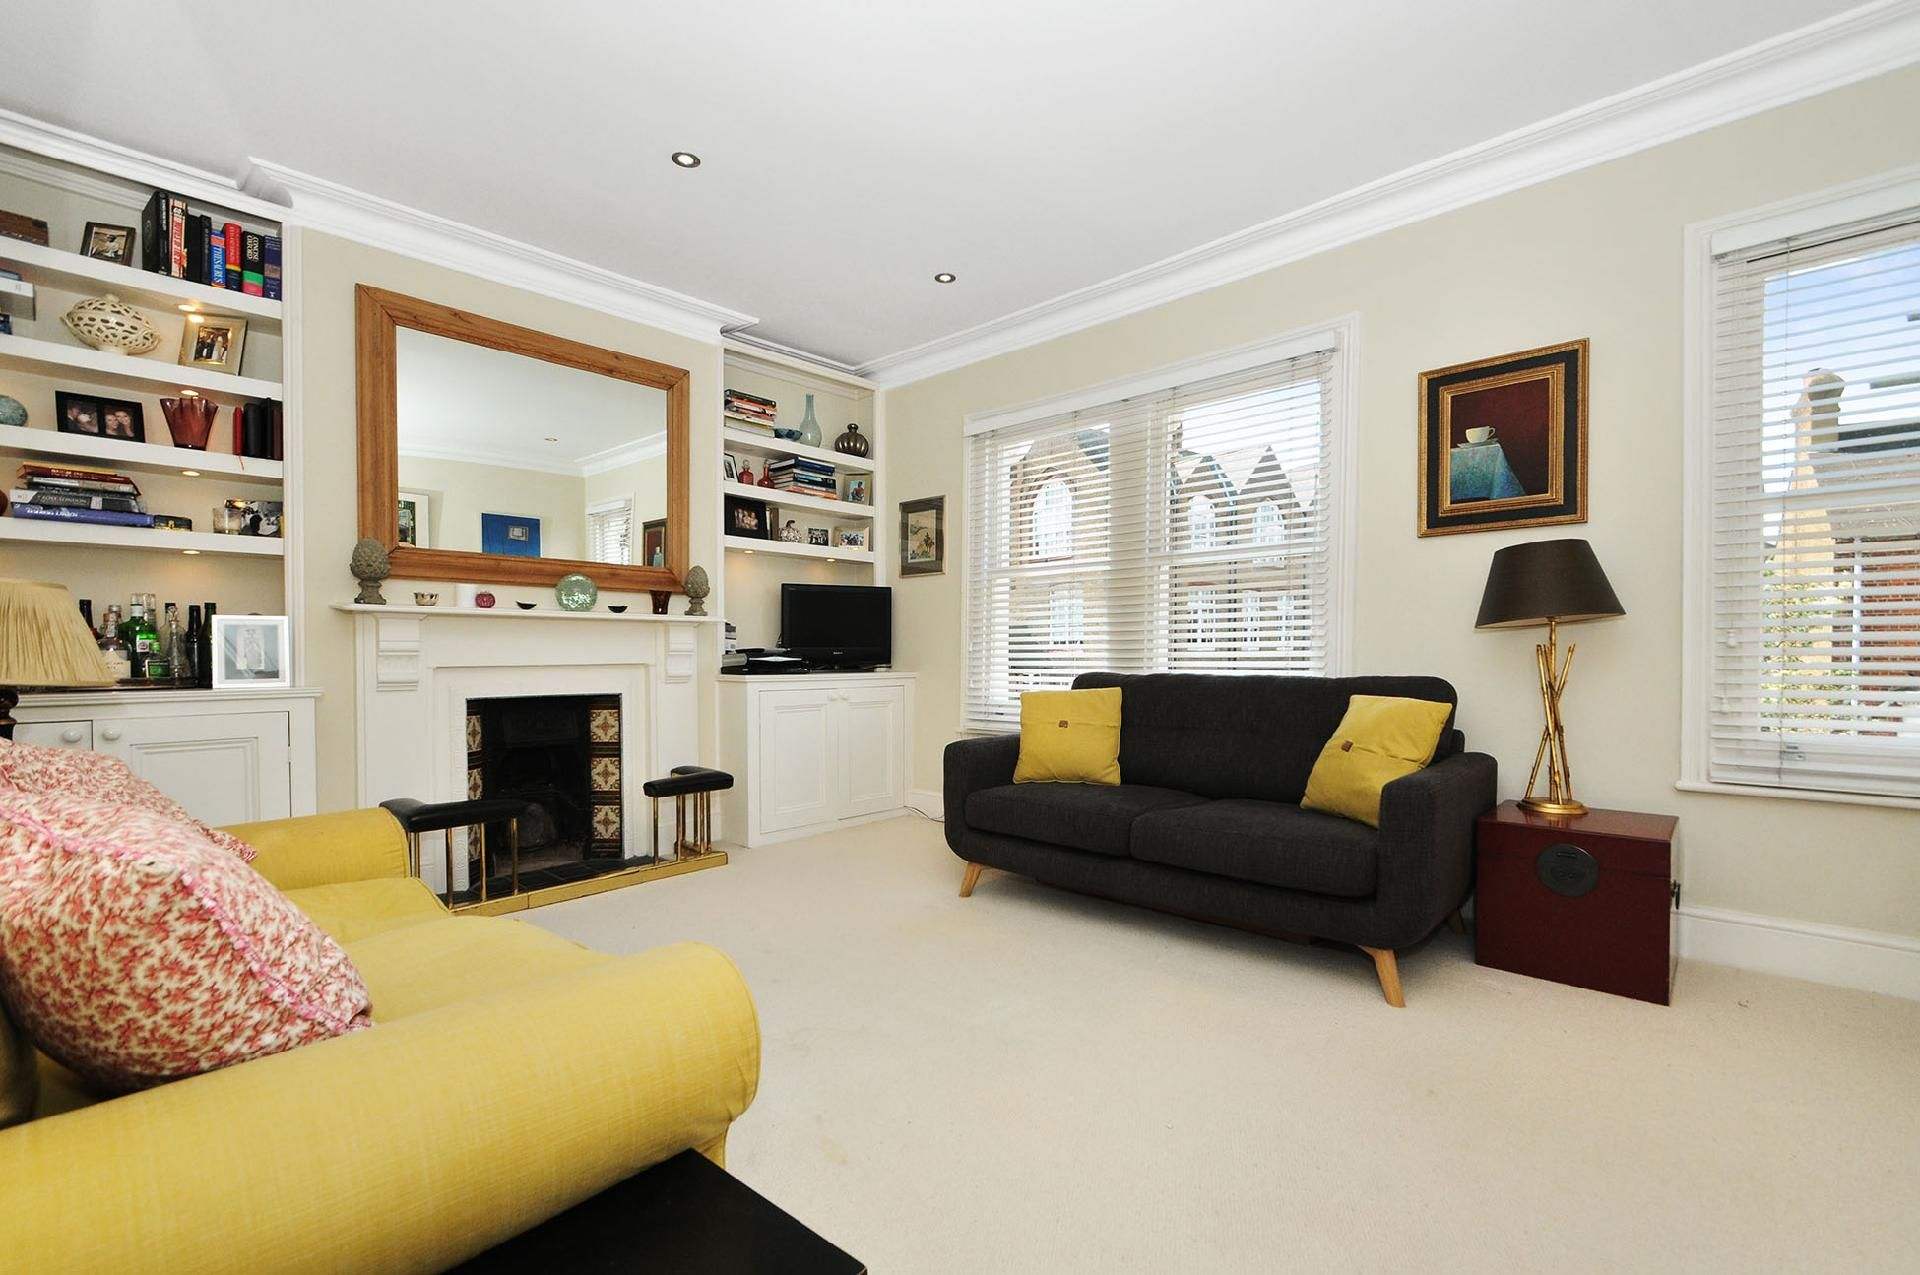 Interior design for double bedroom flat an immaculate two bedroom converted flat located on the top two